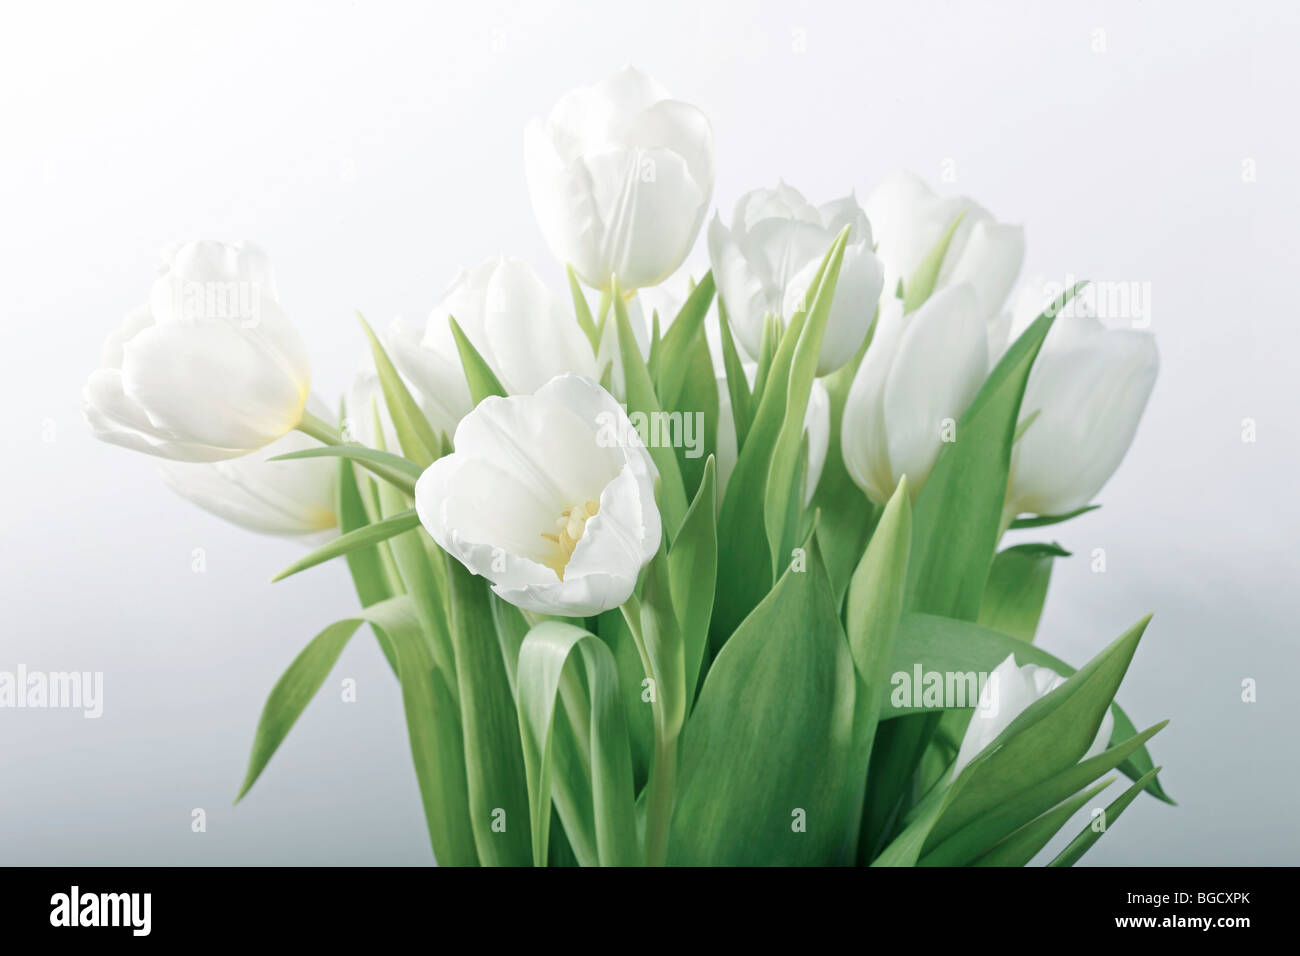 Still life with white tulips - selective focus, main focus on flower in front - Stock Image